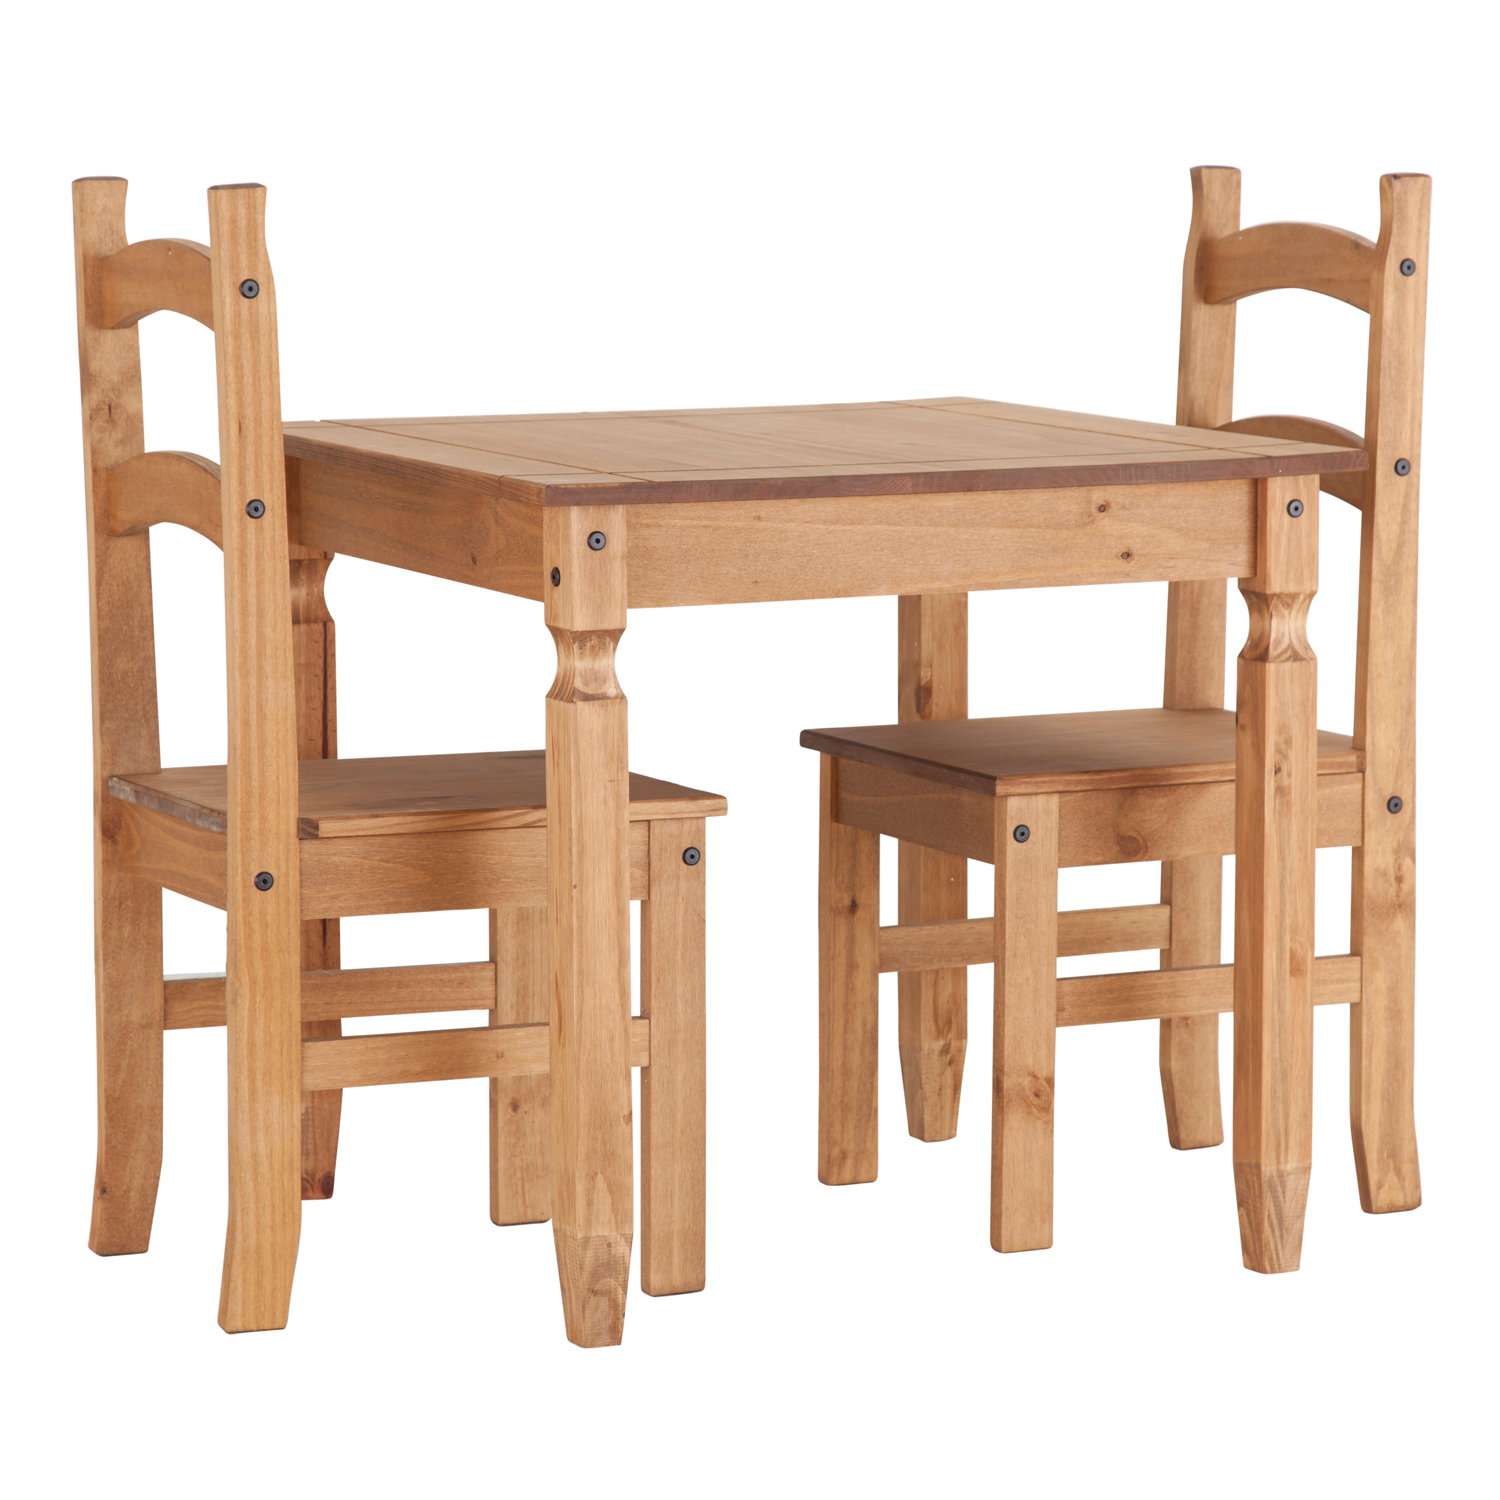 Dining Room Table For 2: Small Pine Dining Room Table And 2 Matching Dining Chairs